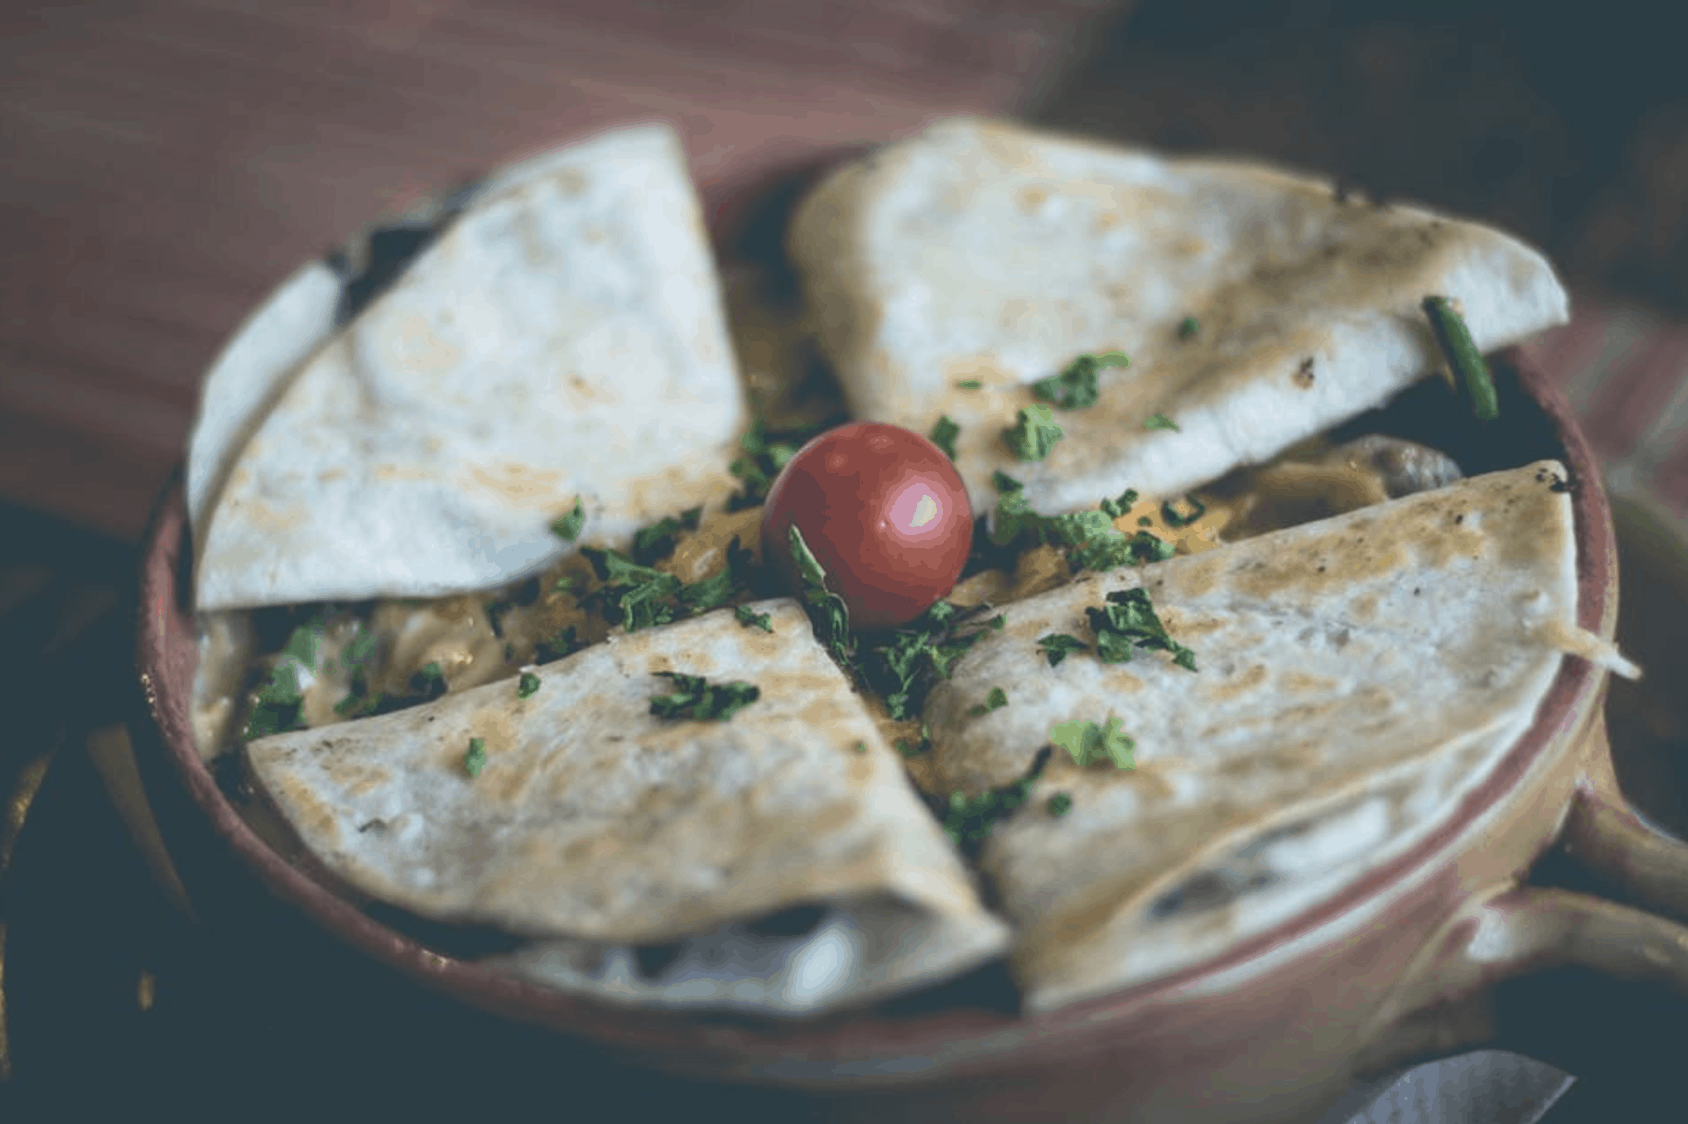 The Gainsadilla – How to Make a High-Protein Quesadilla